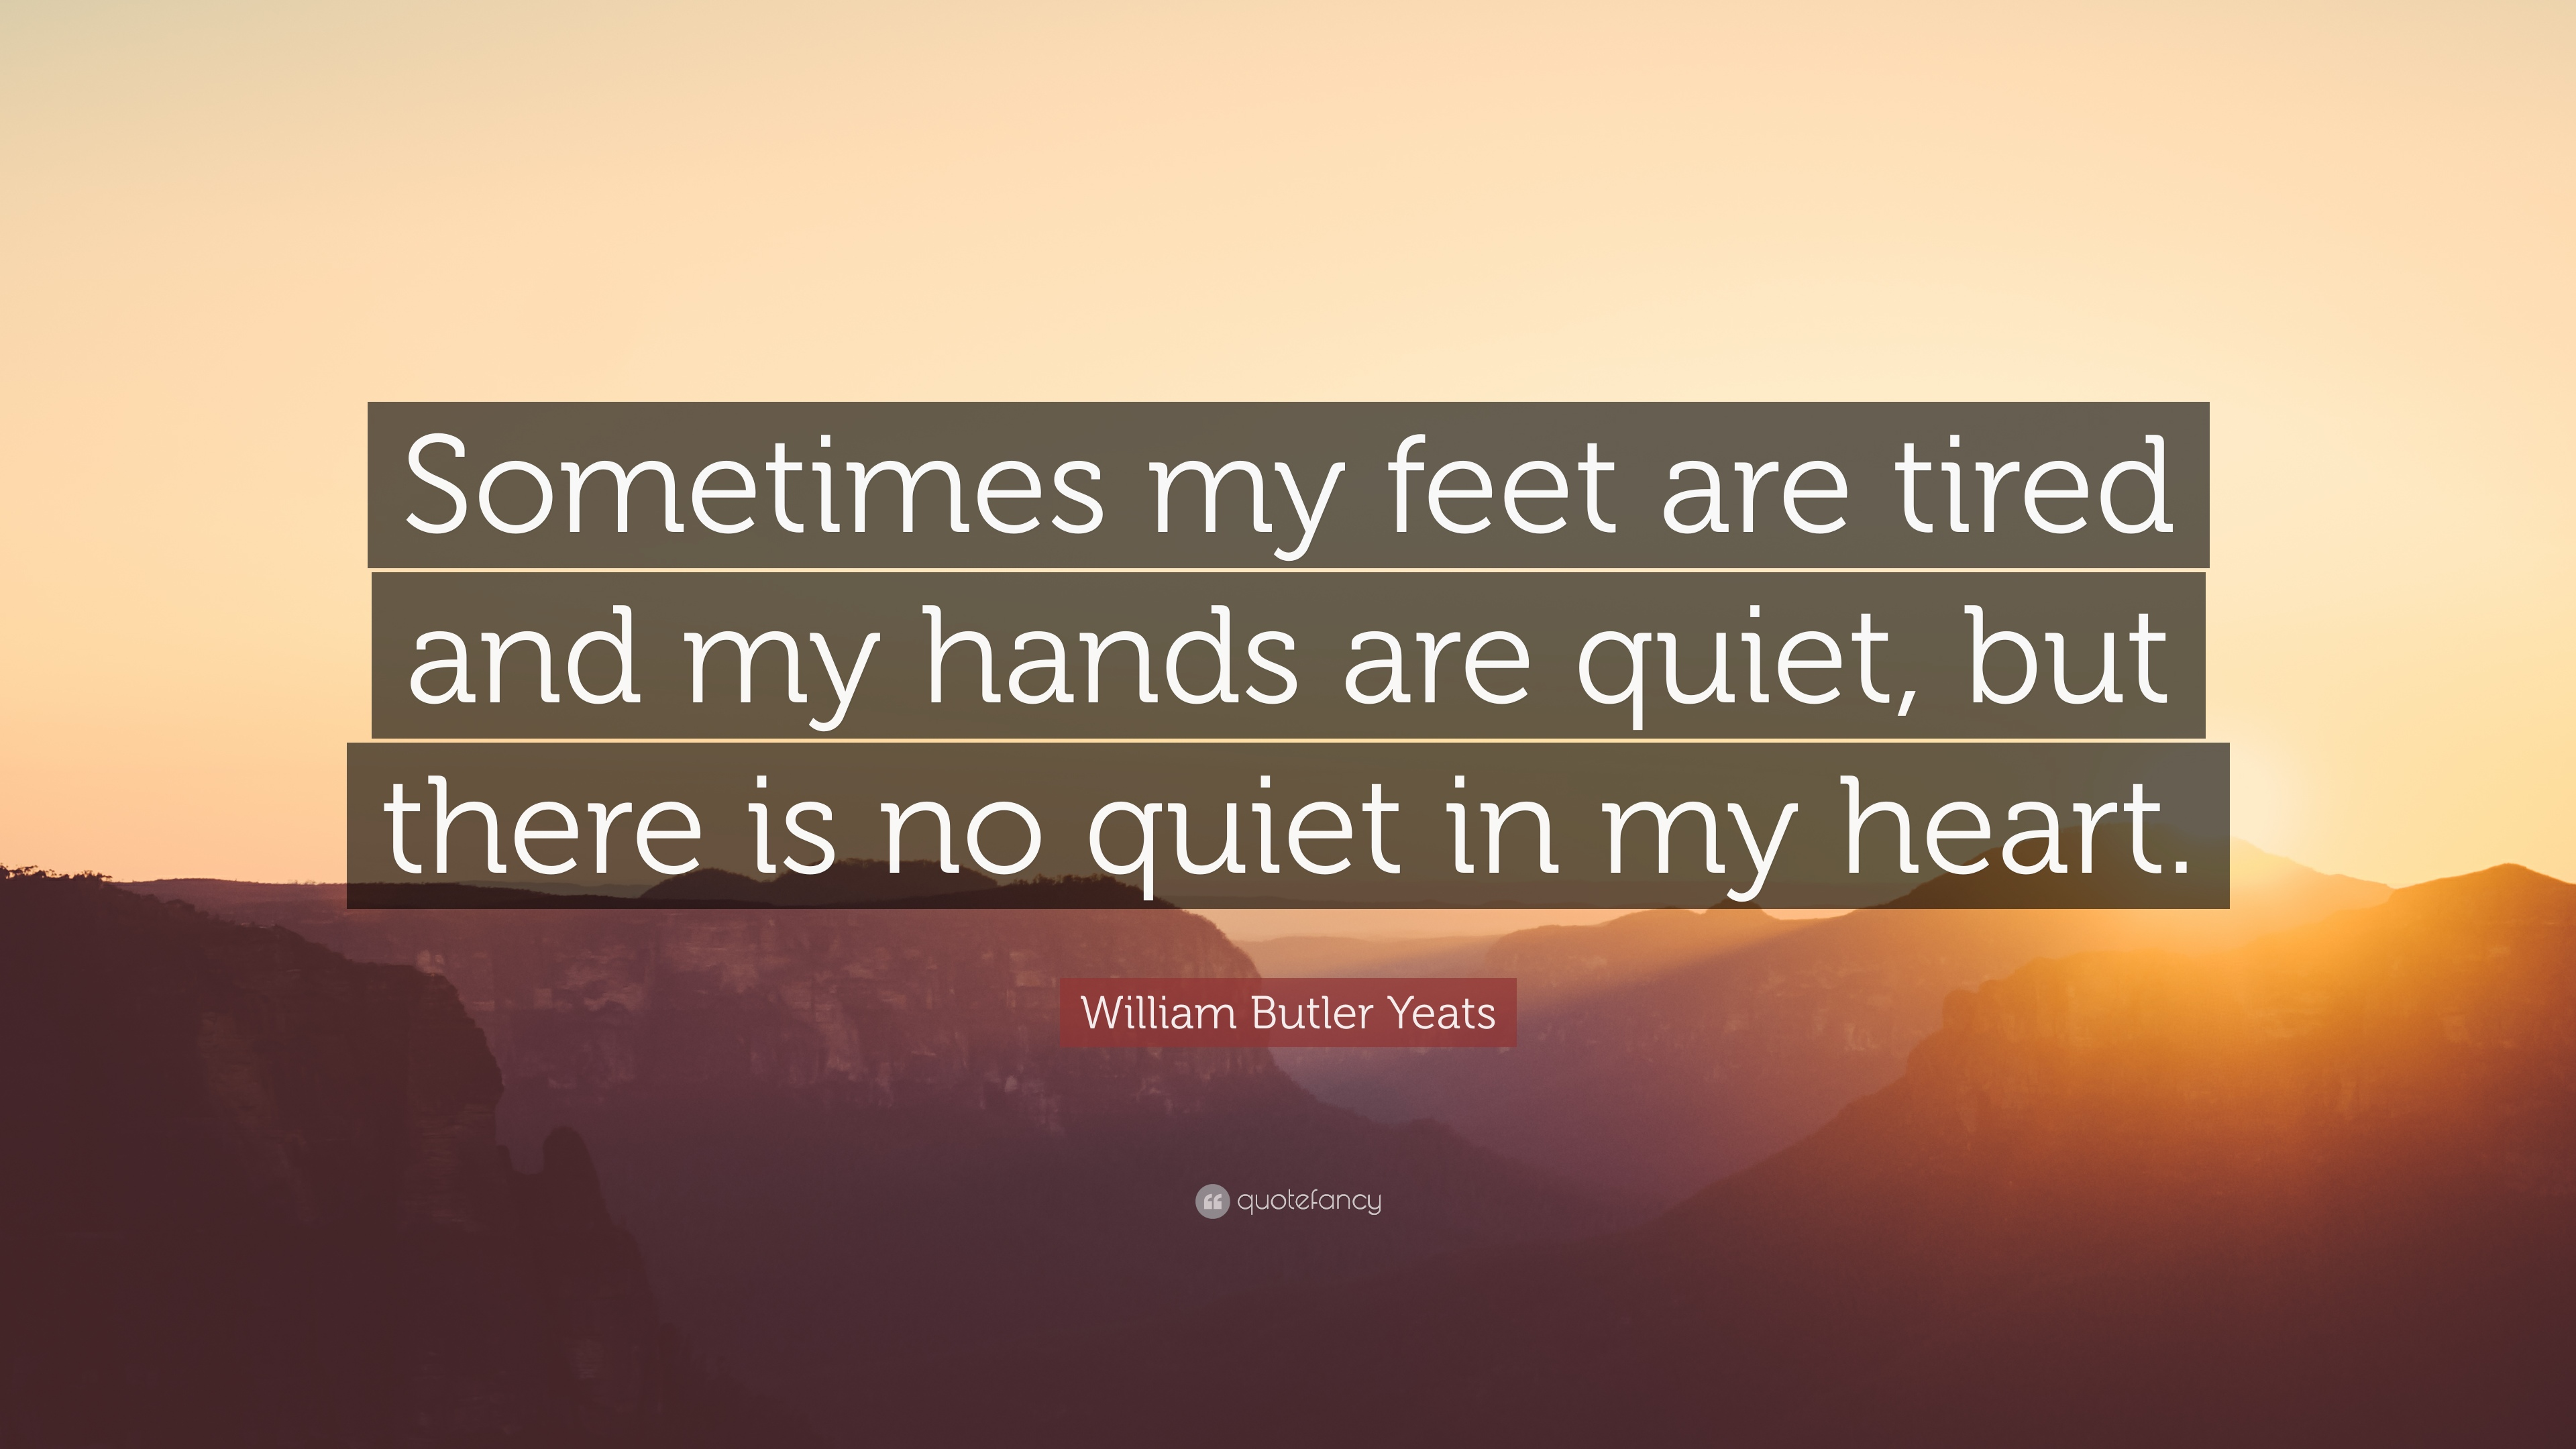 Feet Tired Quotes: William Butler Yeats Quotes (100 Wallpapers)